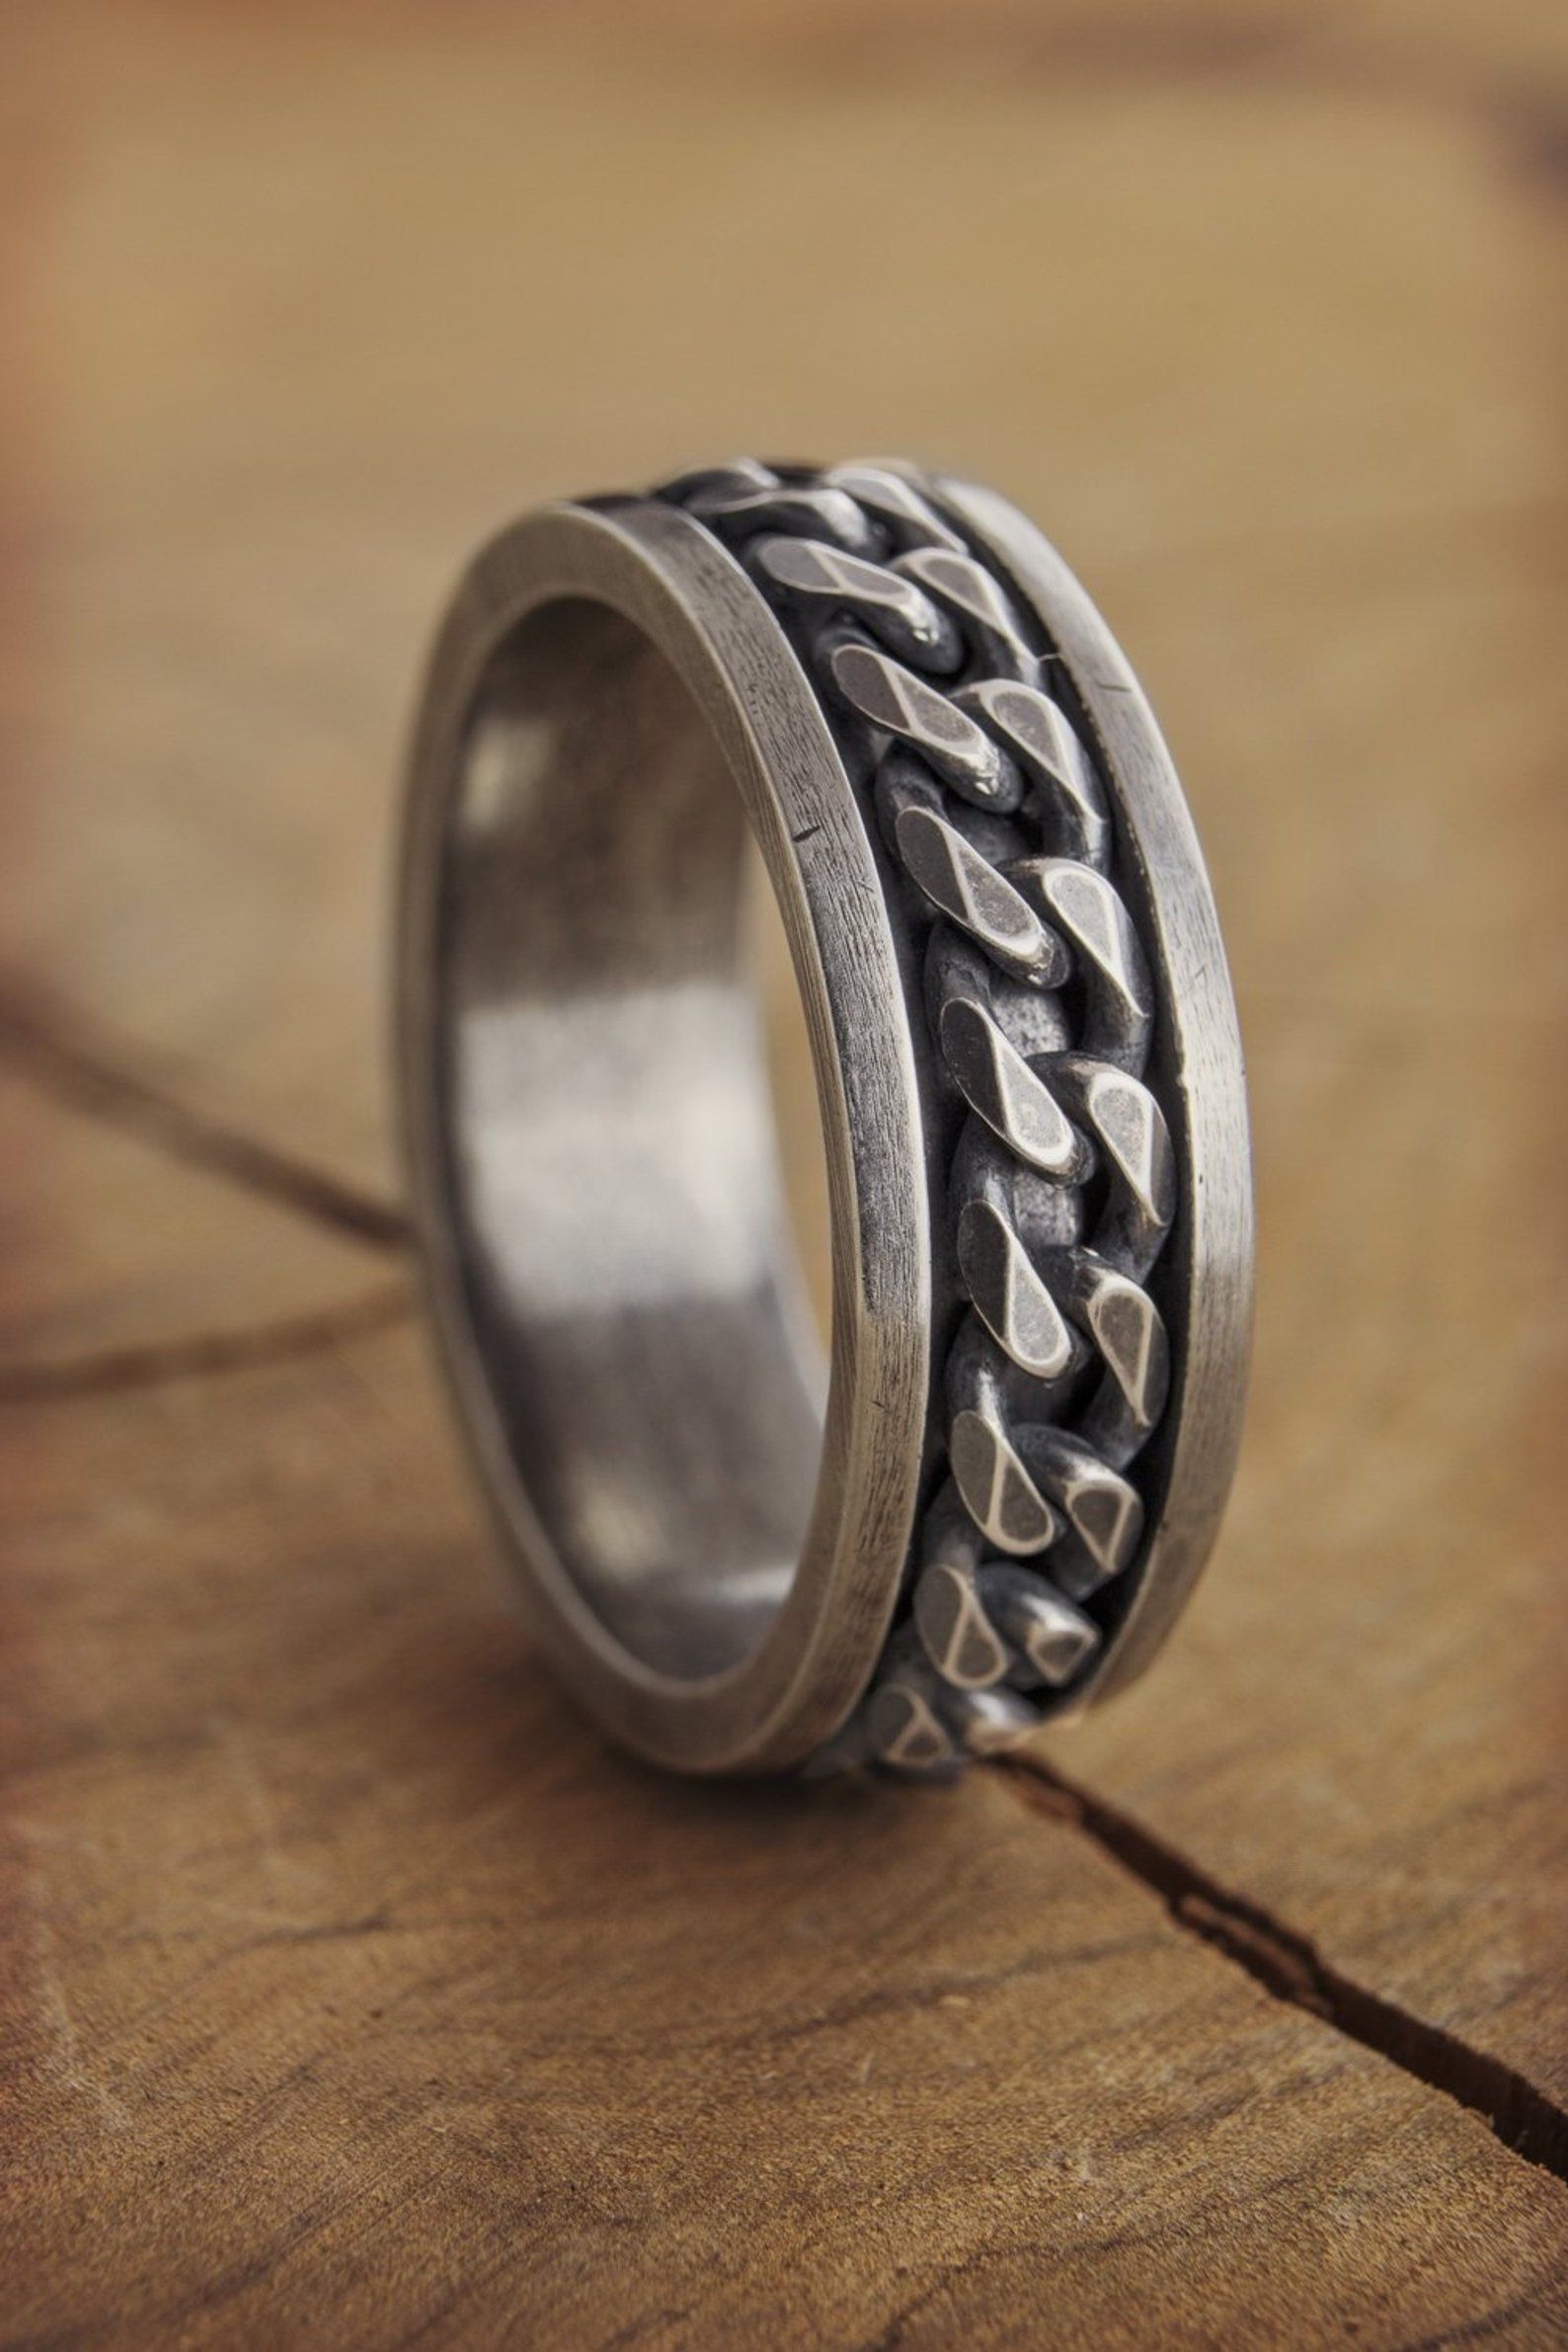 Mountain Style Oxidized Engraving Woman Ring Silver woman Wedding Band Perfect Valentine/'s Day Gift For her. Wedding Band